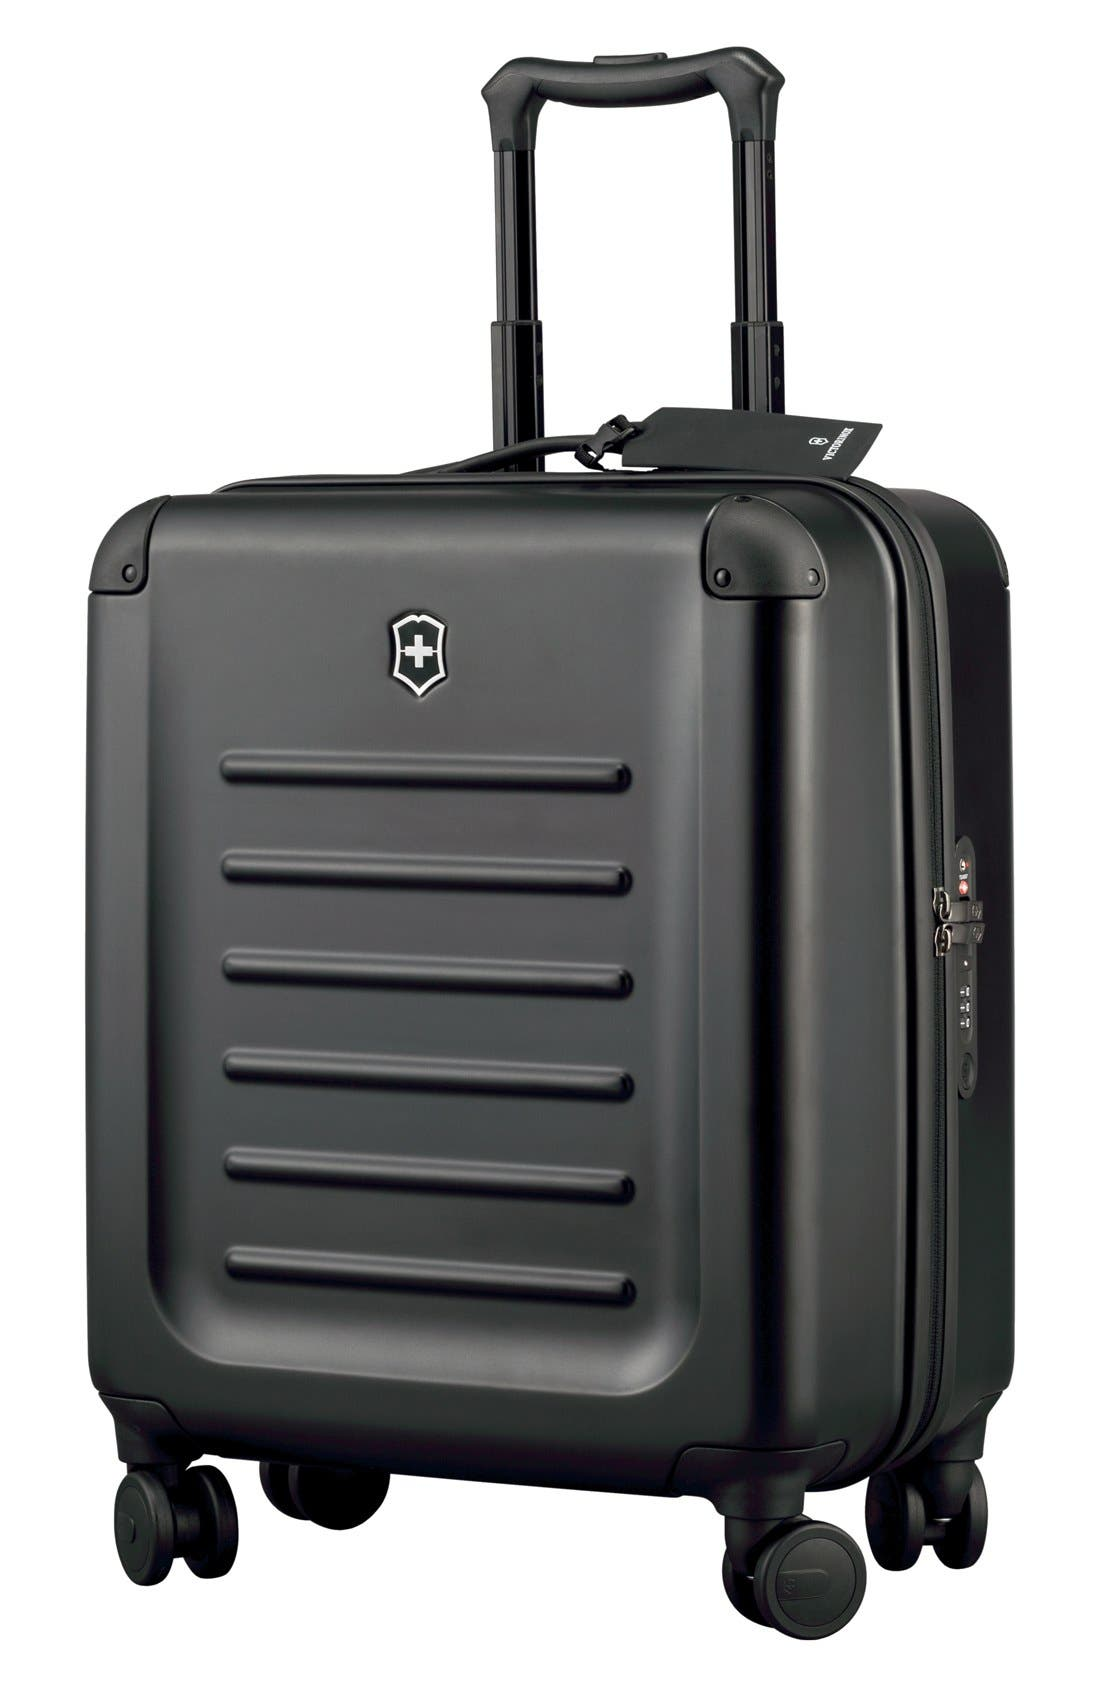 Alternate Image 1 Selected - Victorinox Swiss Army® Spectra 2.0 Extra Capacity Hard Sided Rolling 22-Inch Carry-On